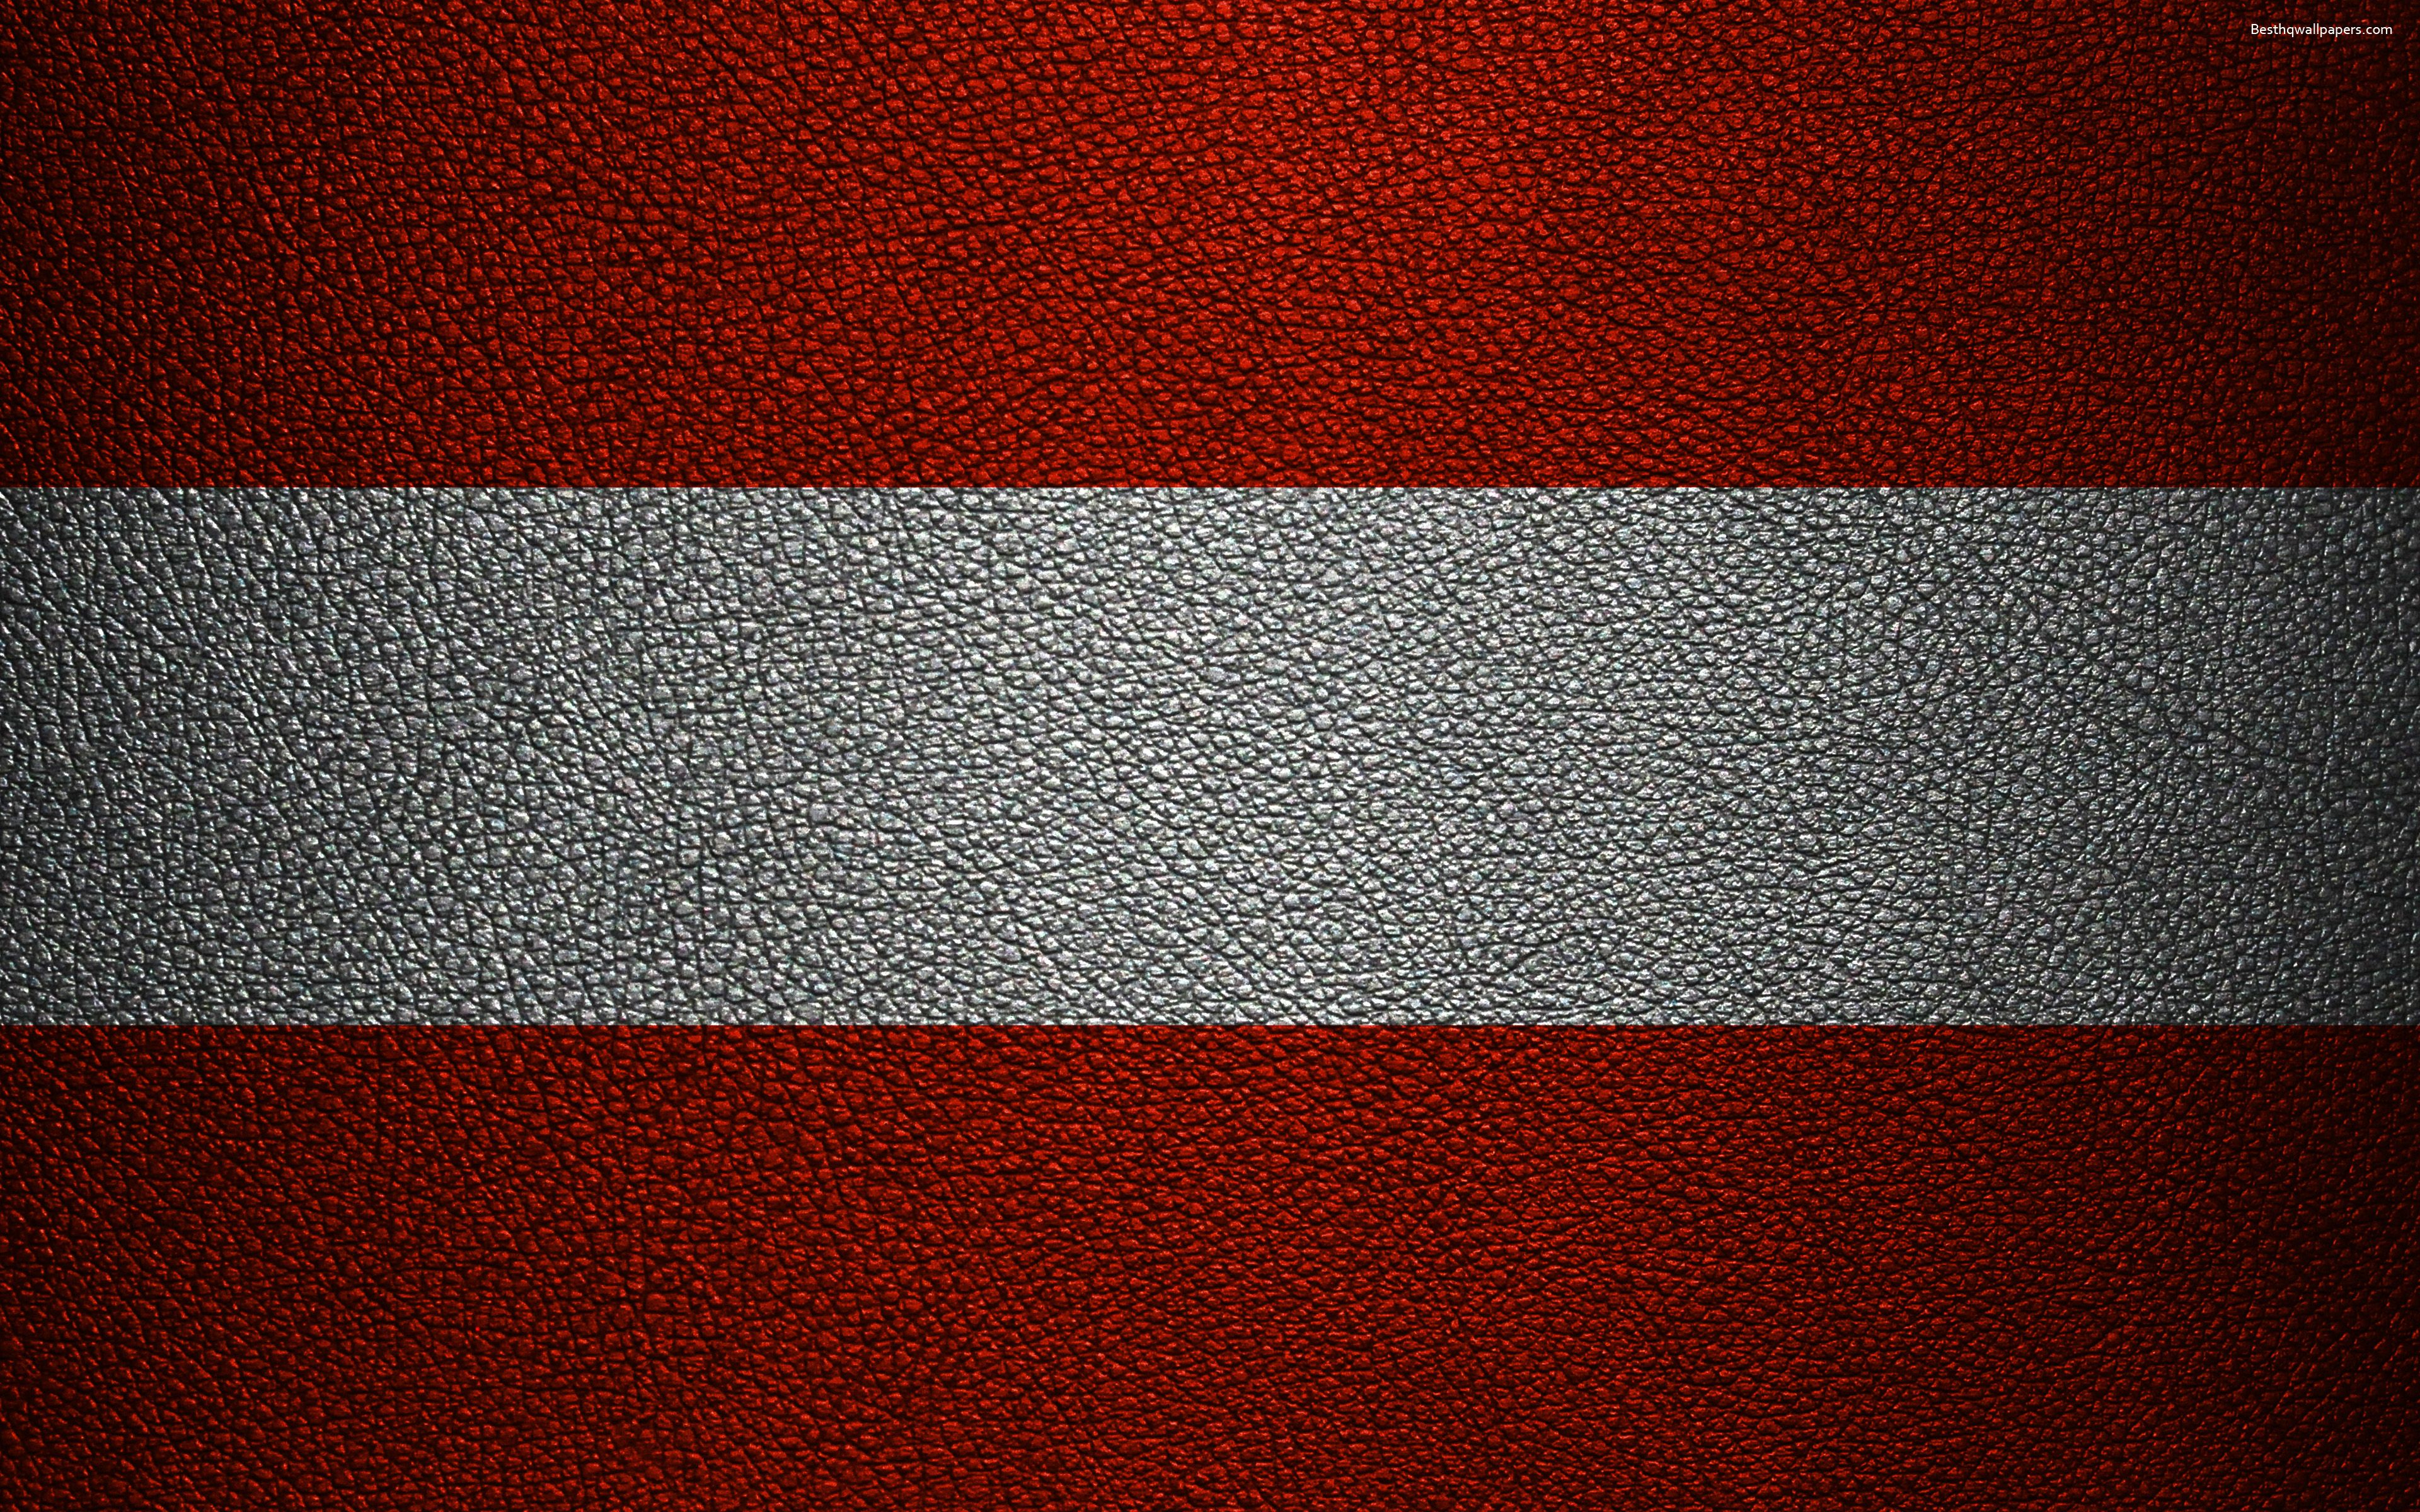 3840x2400 Download wallpapers Flag of Austria, 4k, leather texture ...